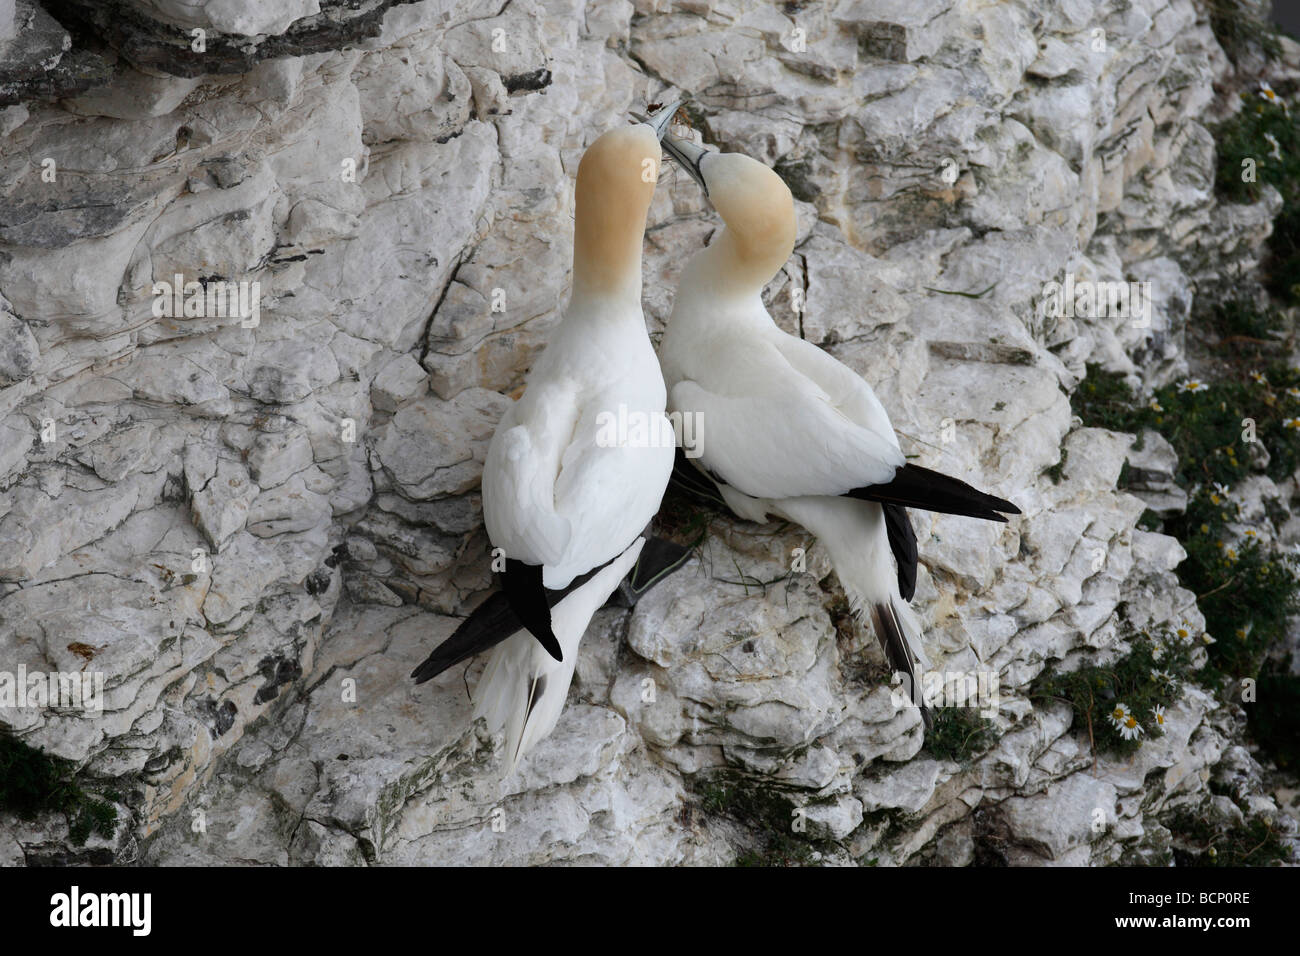 Gannet Sulu bassana pair at nest with nest material - Stock Image